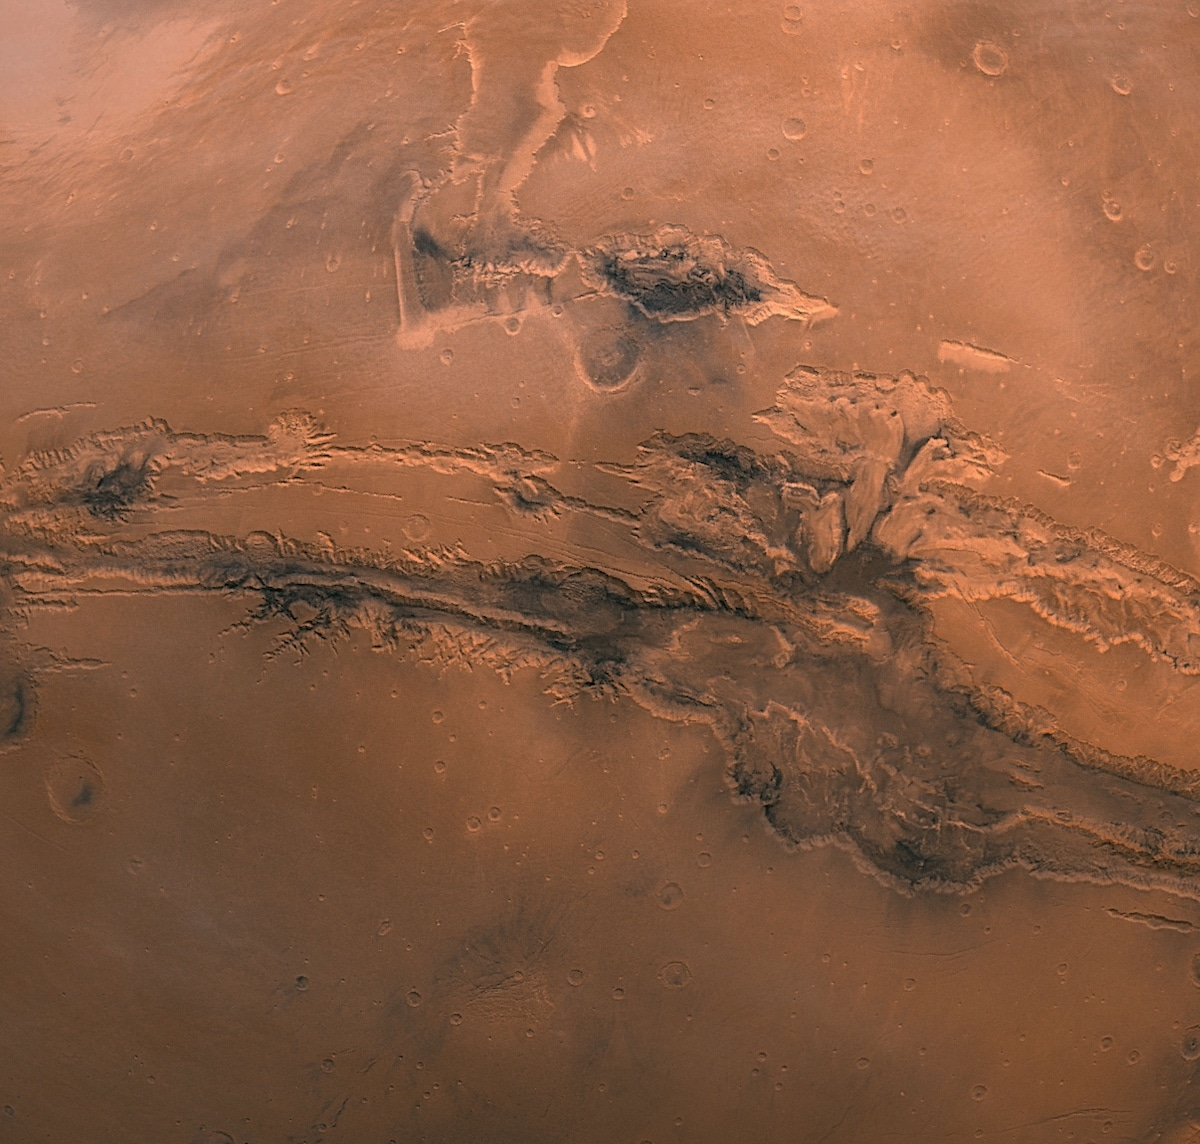 Detail of Mariner Valley on Mars